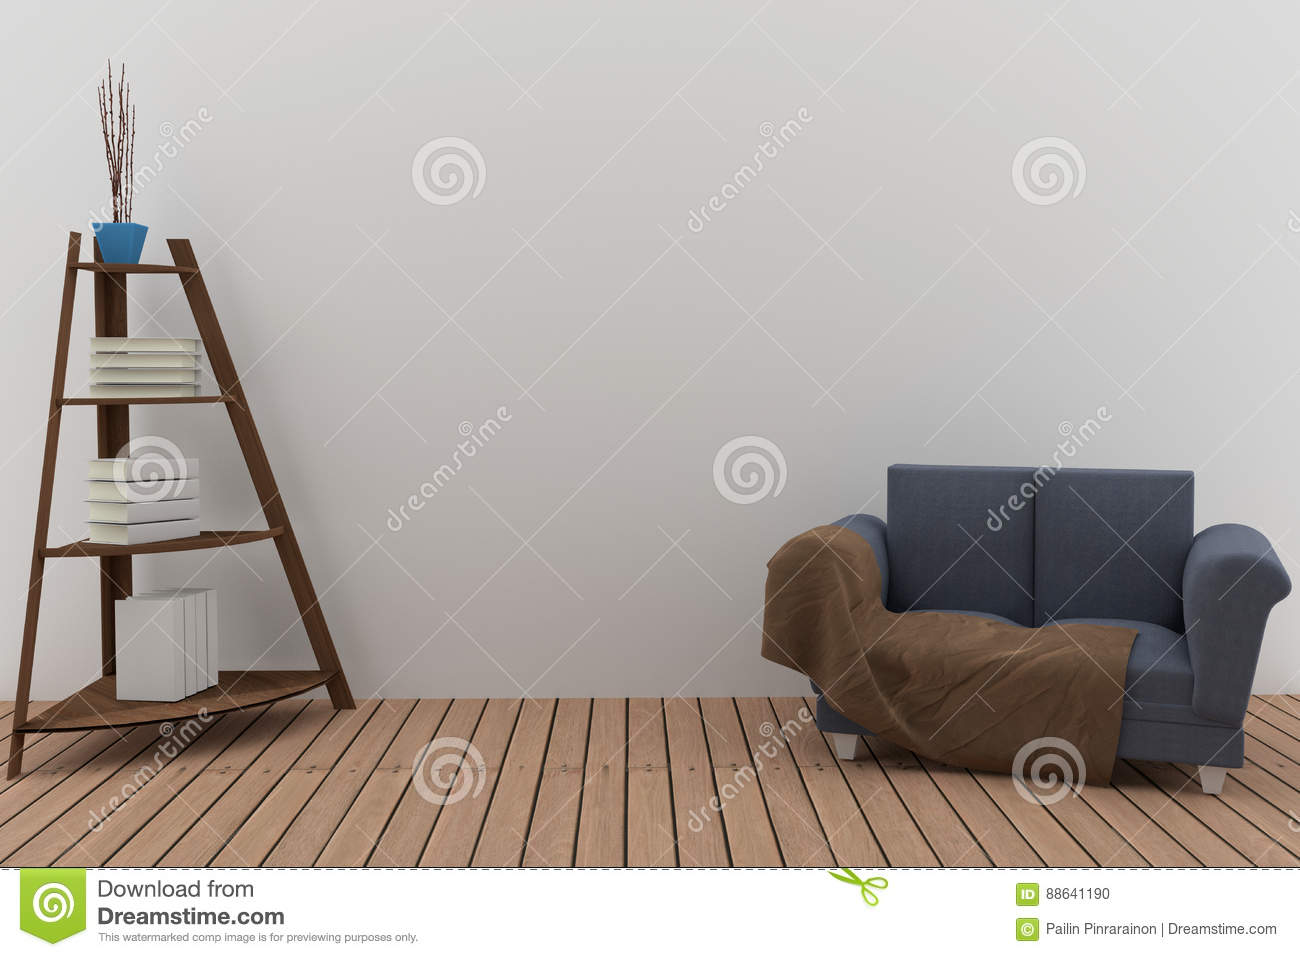 Double Sofa Fabric With Bookshelf In The Room Interior 3D Rendering